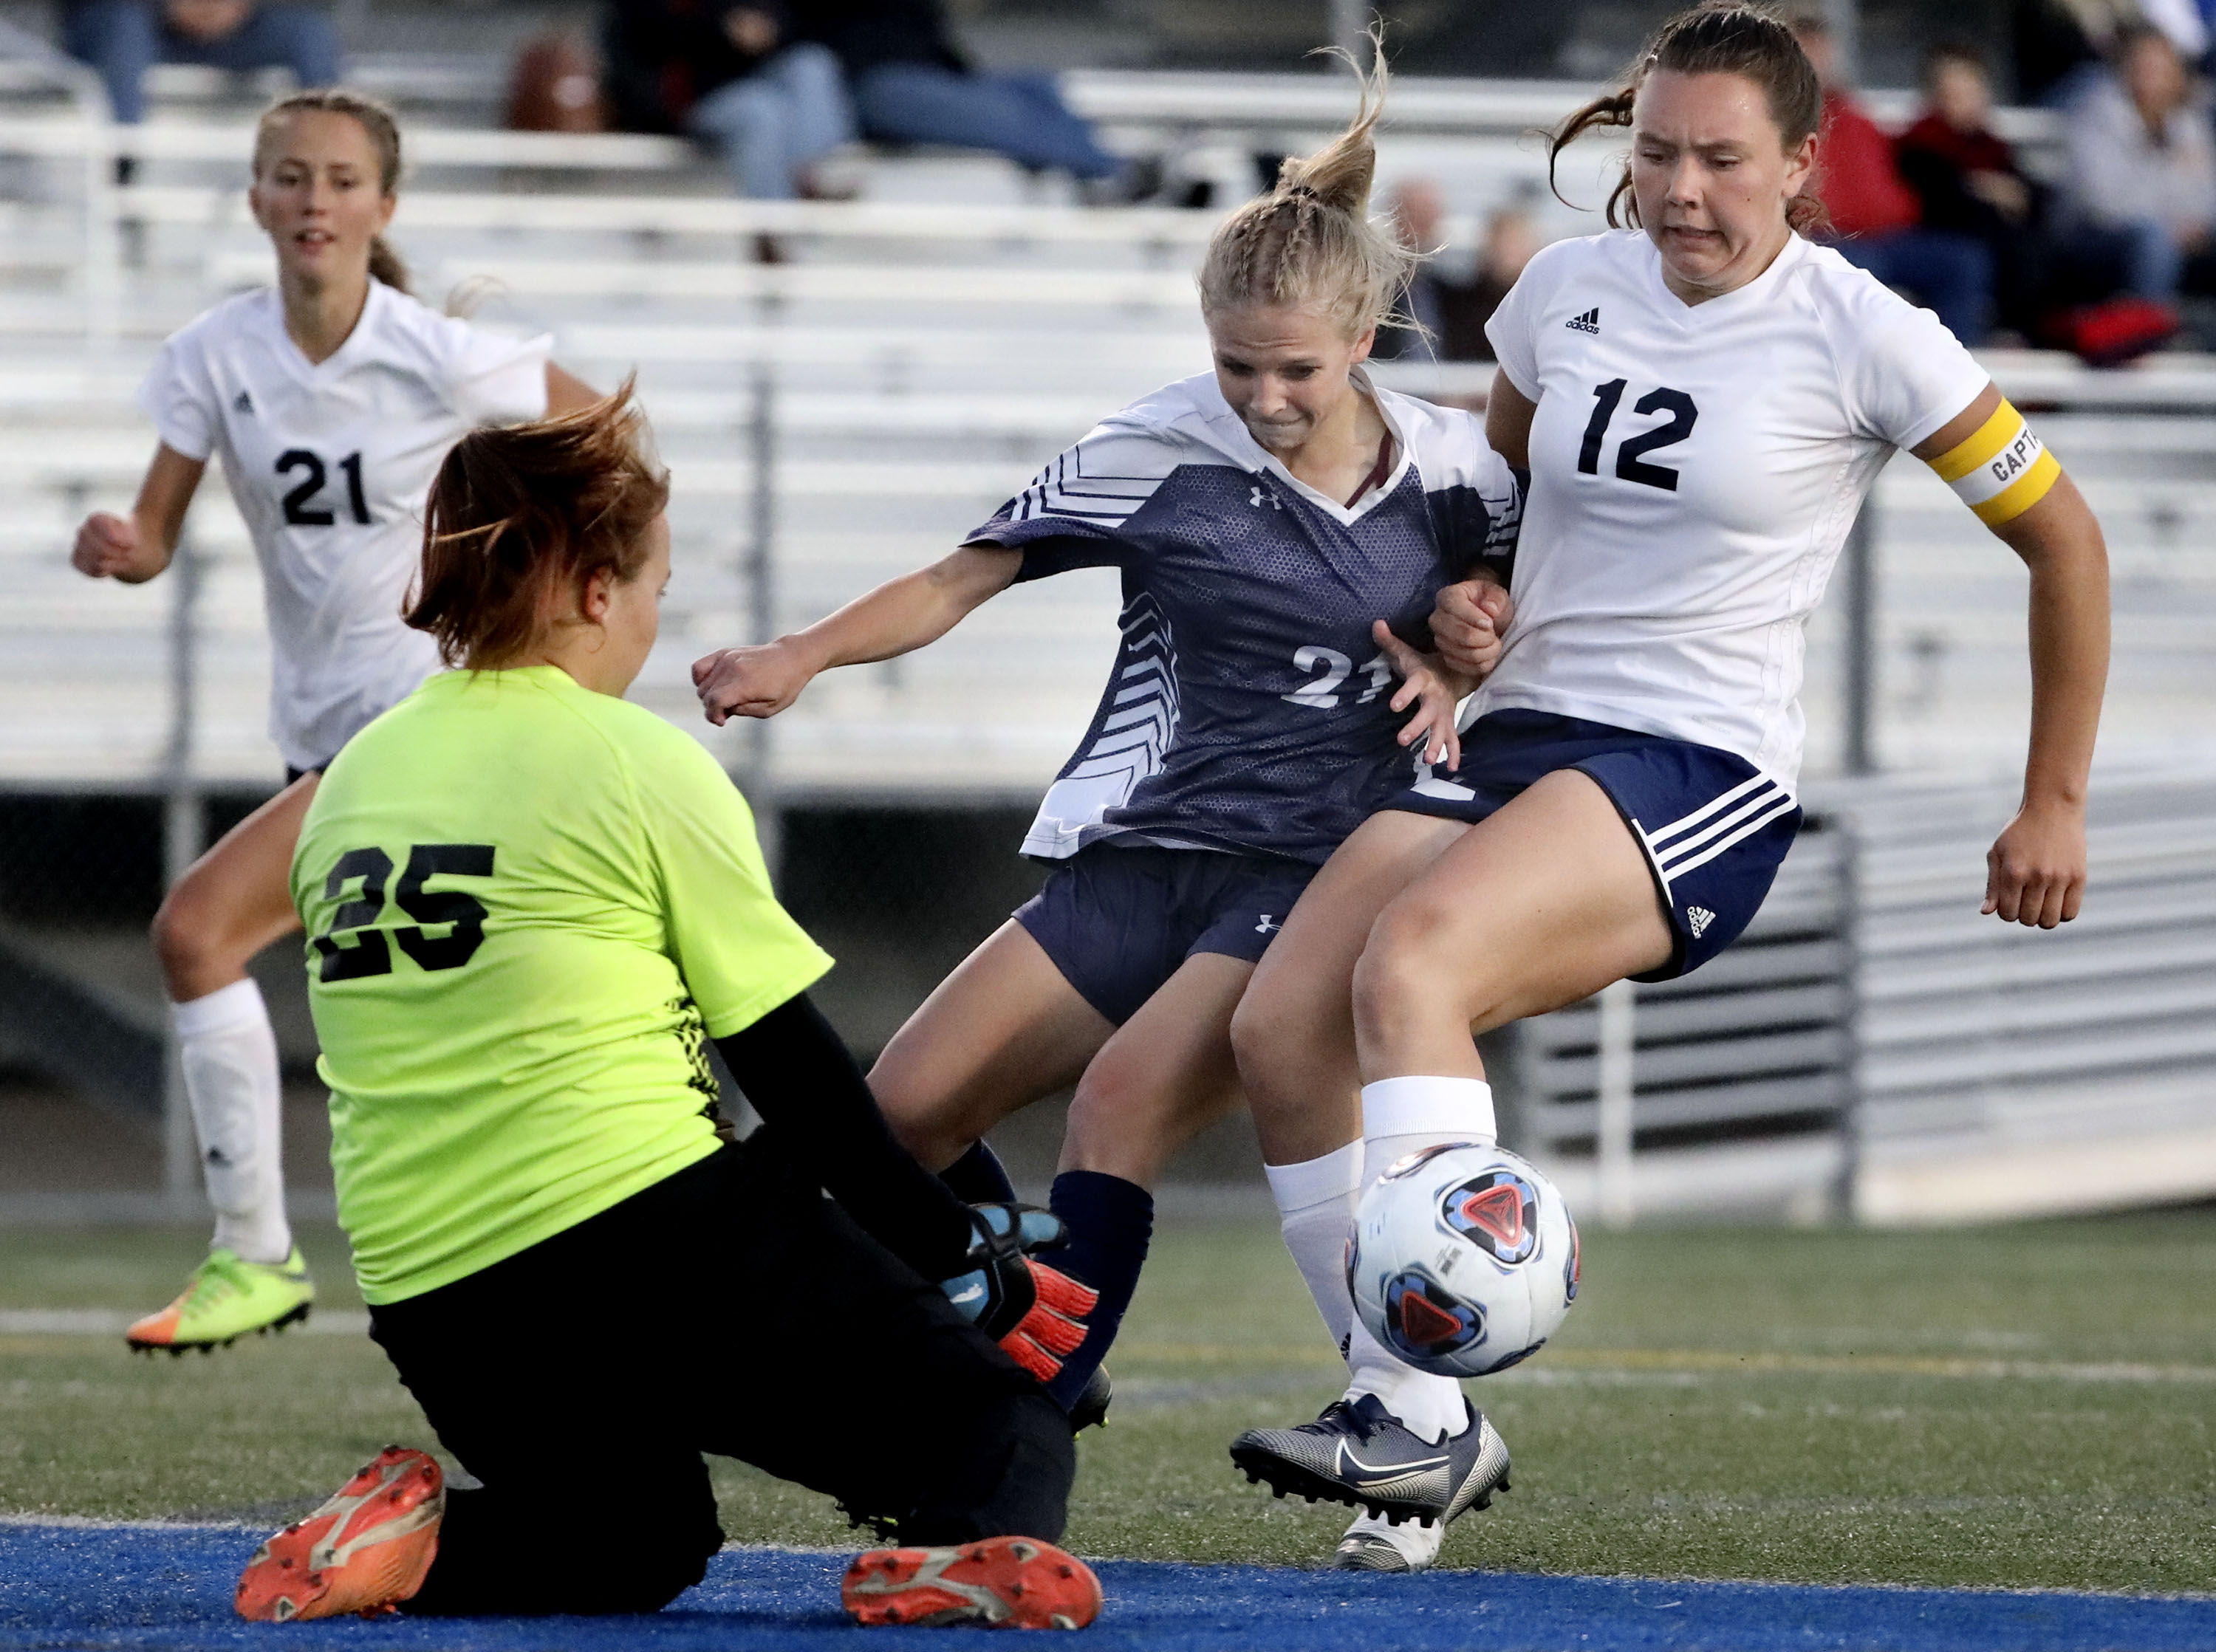 Waterford's Grace Morris tries to score against Millard's Lucy Freeman and Hannah Koyle in the 2A girls soccer semifinals.